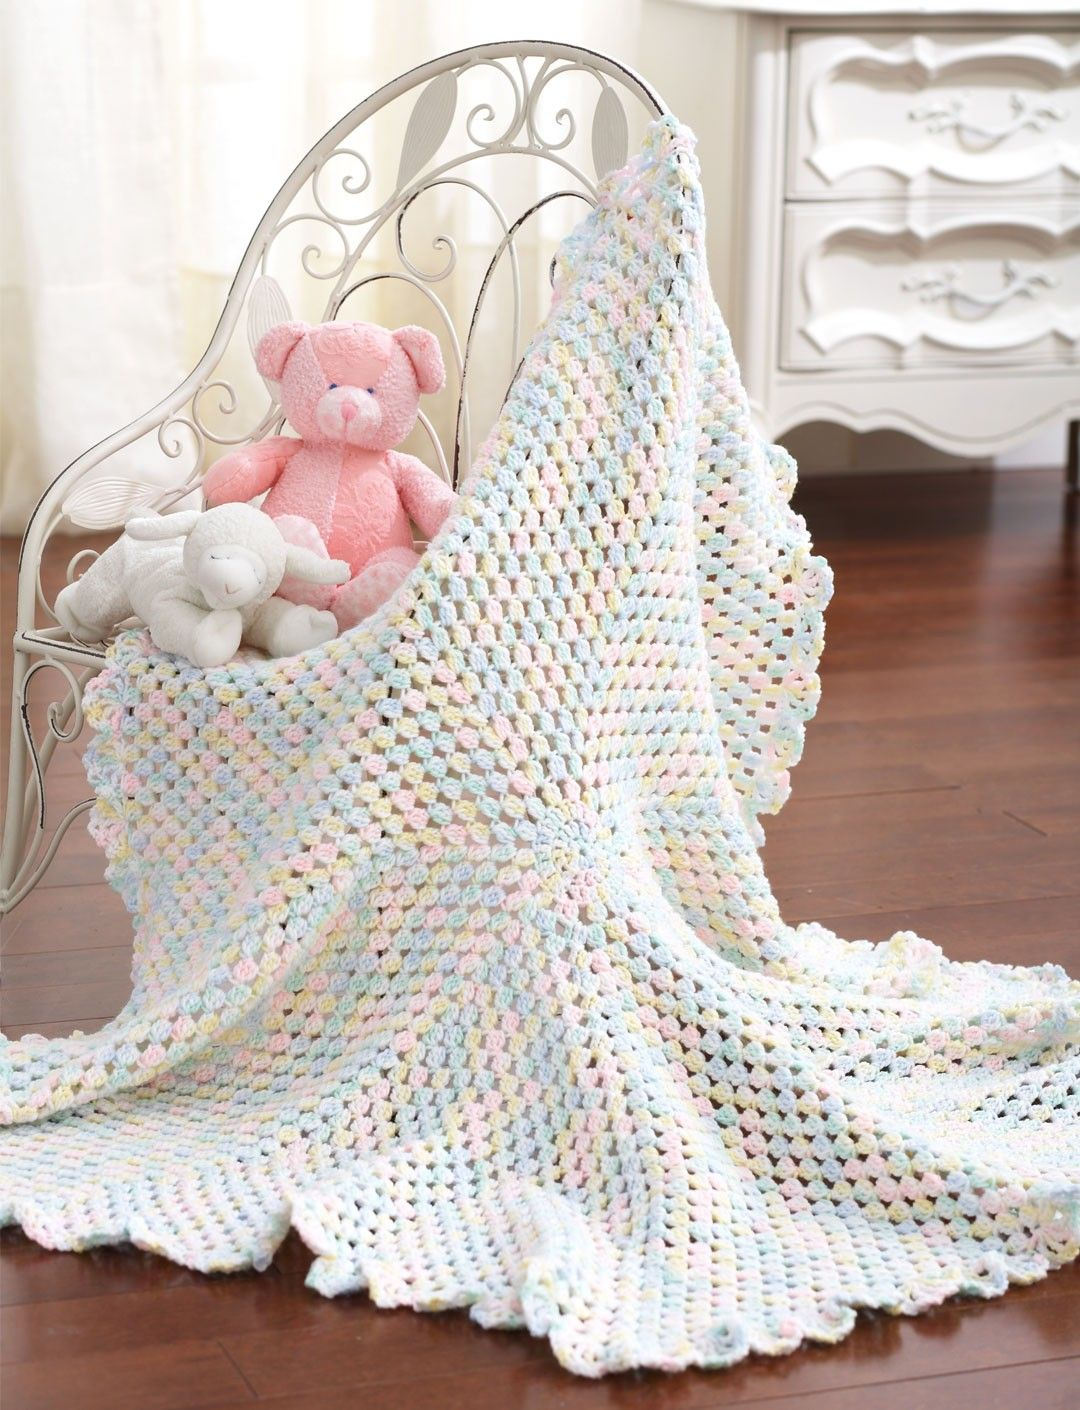 Yarnspirations.com - Bernat Round Blanket to Crochet - Patterns ...